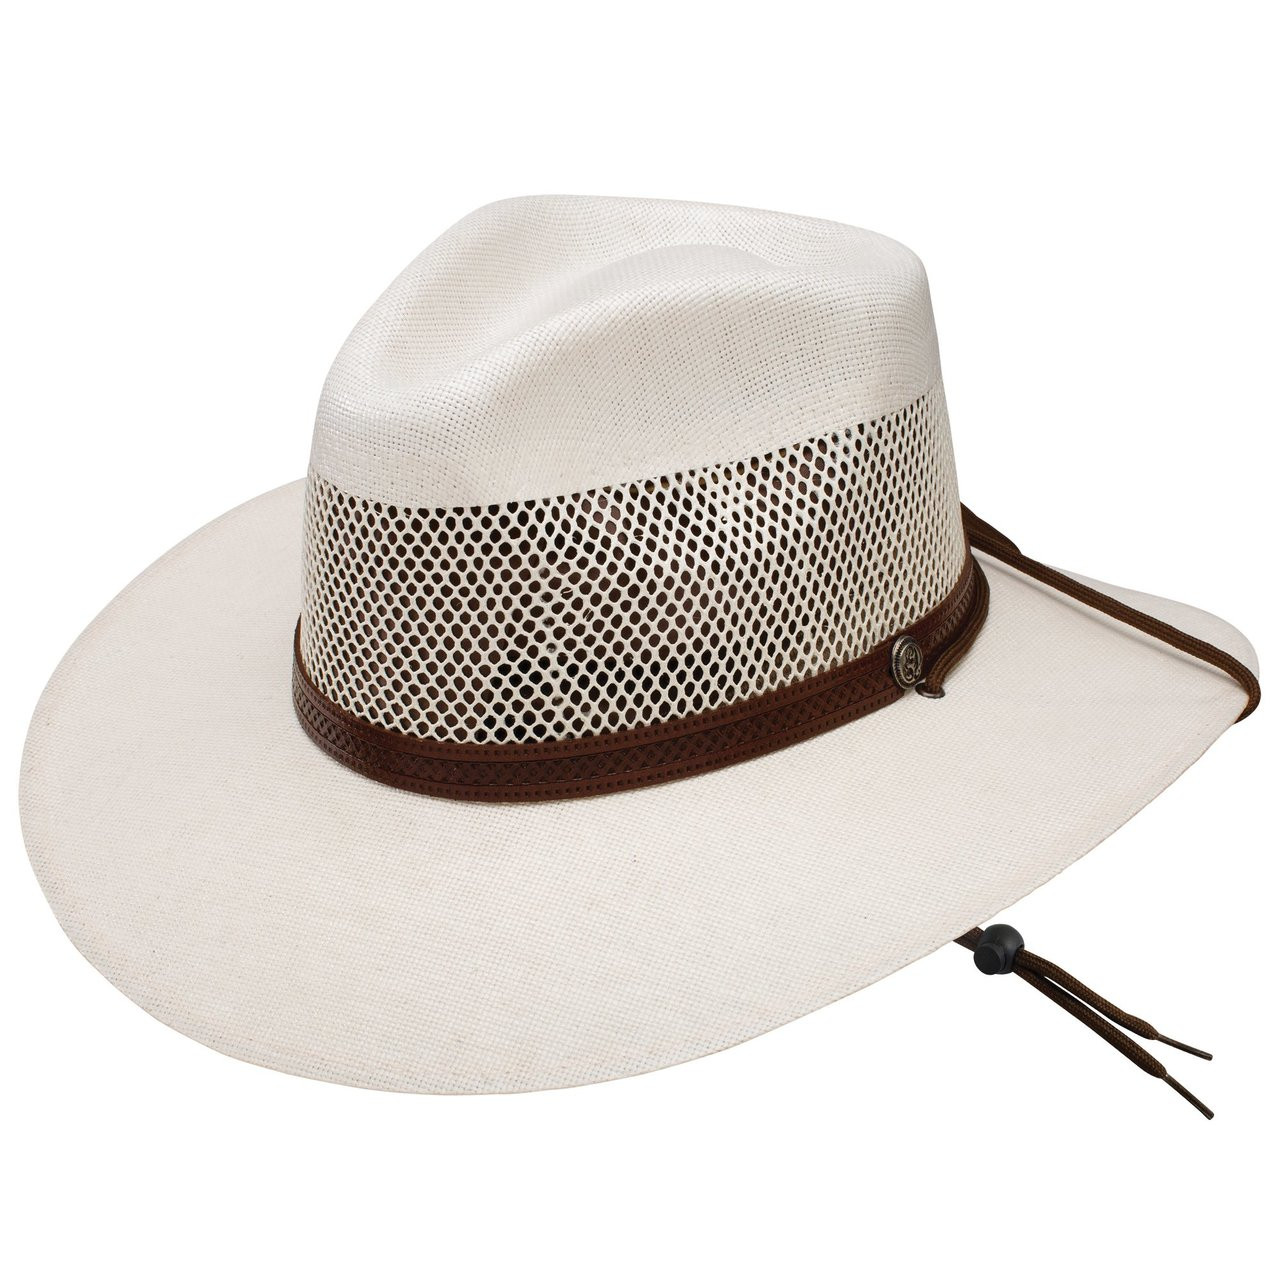 3a482a9cf56 Stetson Mens Hats - Lodge Vented Straw Hat - Natural - Billy's ...